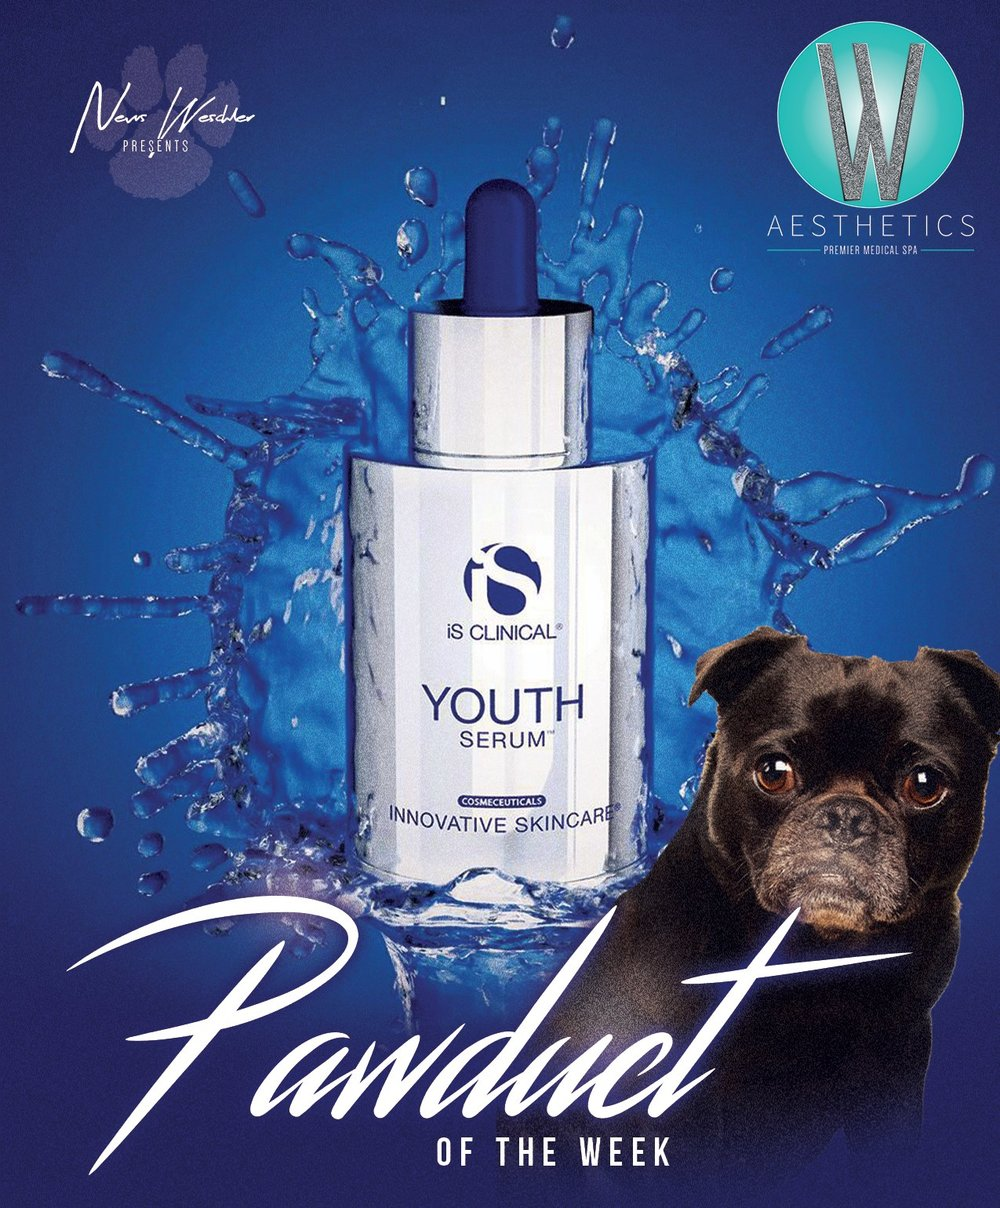 iS Clinical Youth Serum is one of the many innovative skincare products in-stock at Werschler Aesthetics Premier Medical Spa in Spokane, WA.